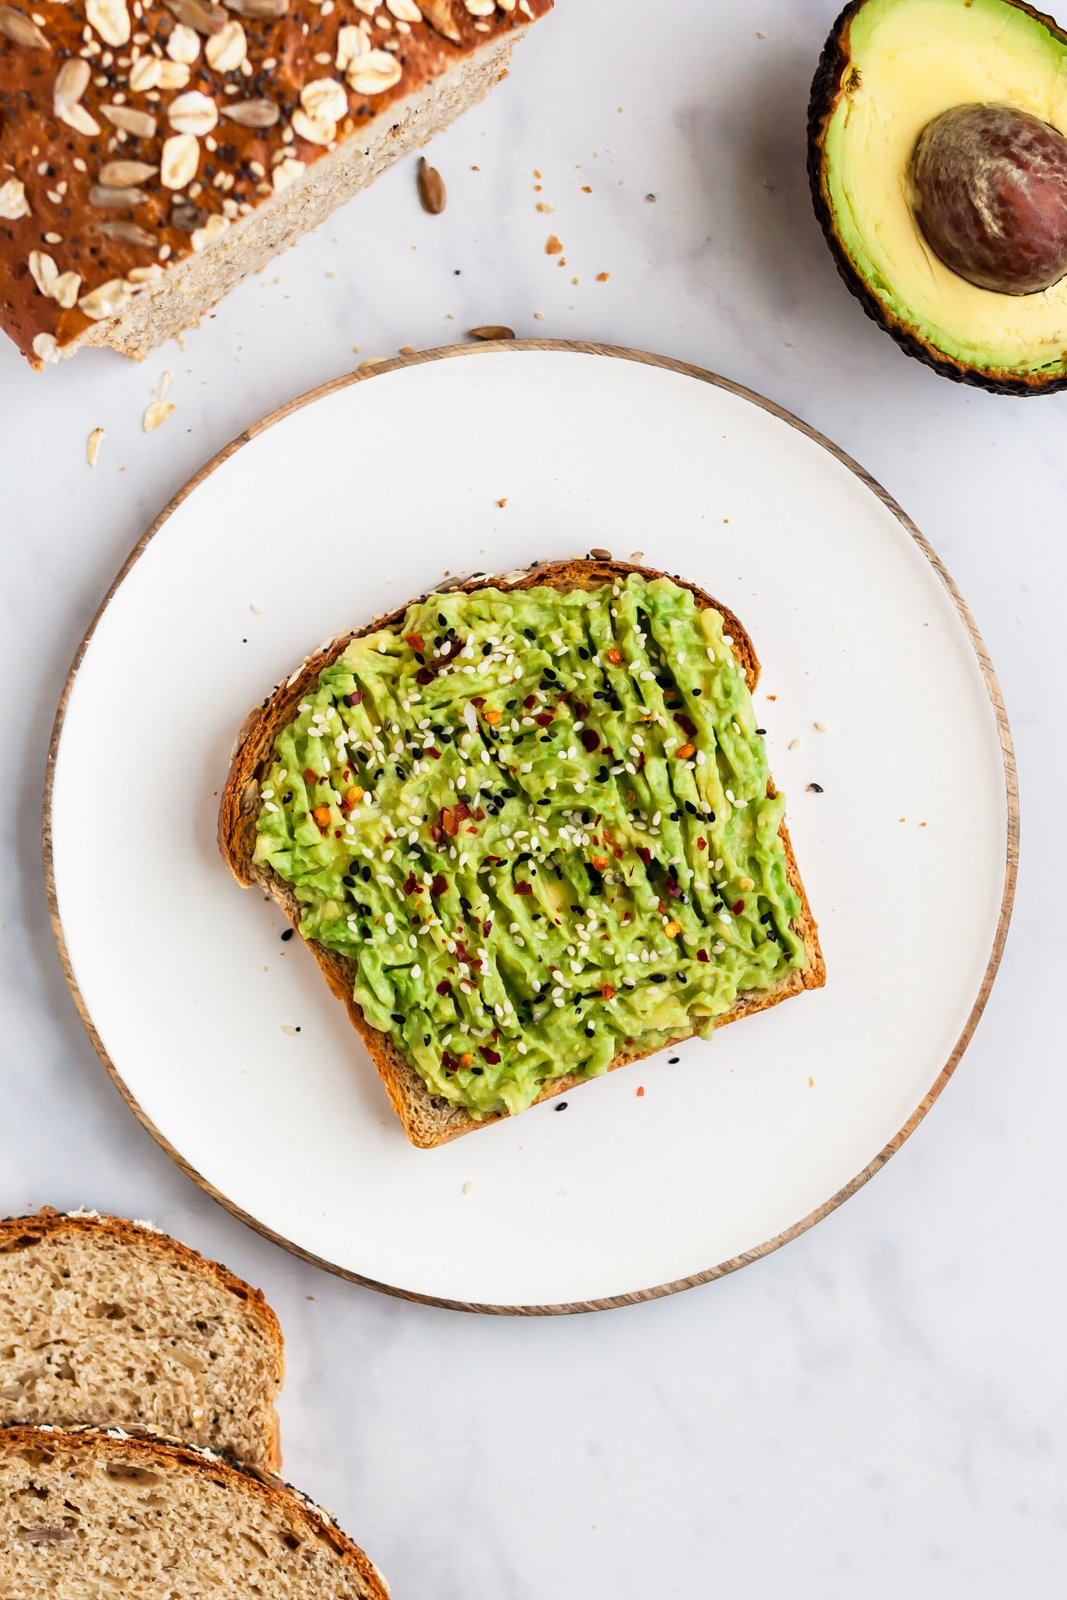 slice of homemade sandwich bread on a plate with mashed avocado on top